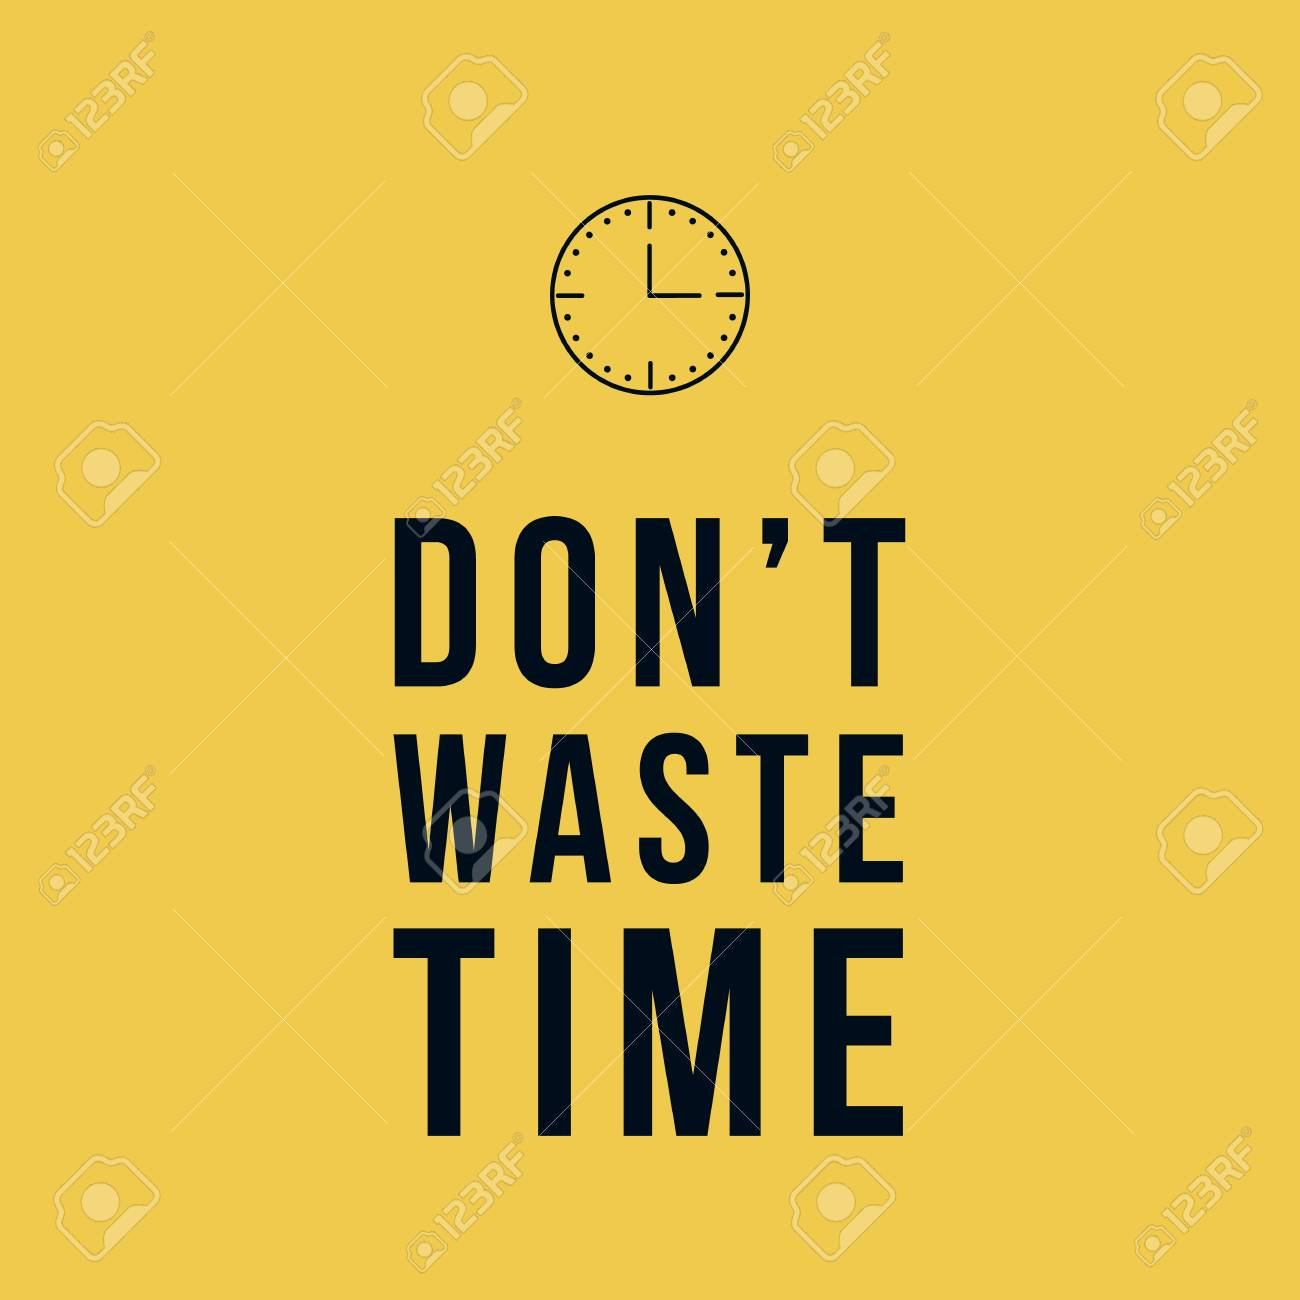 Do Not Waste Time Motivational Vector Poster Quotes Stock Photo